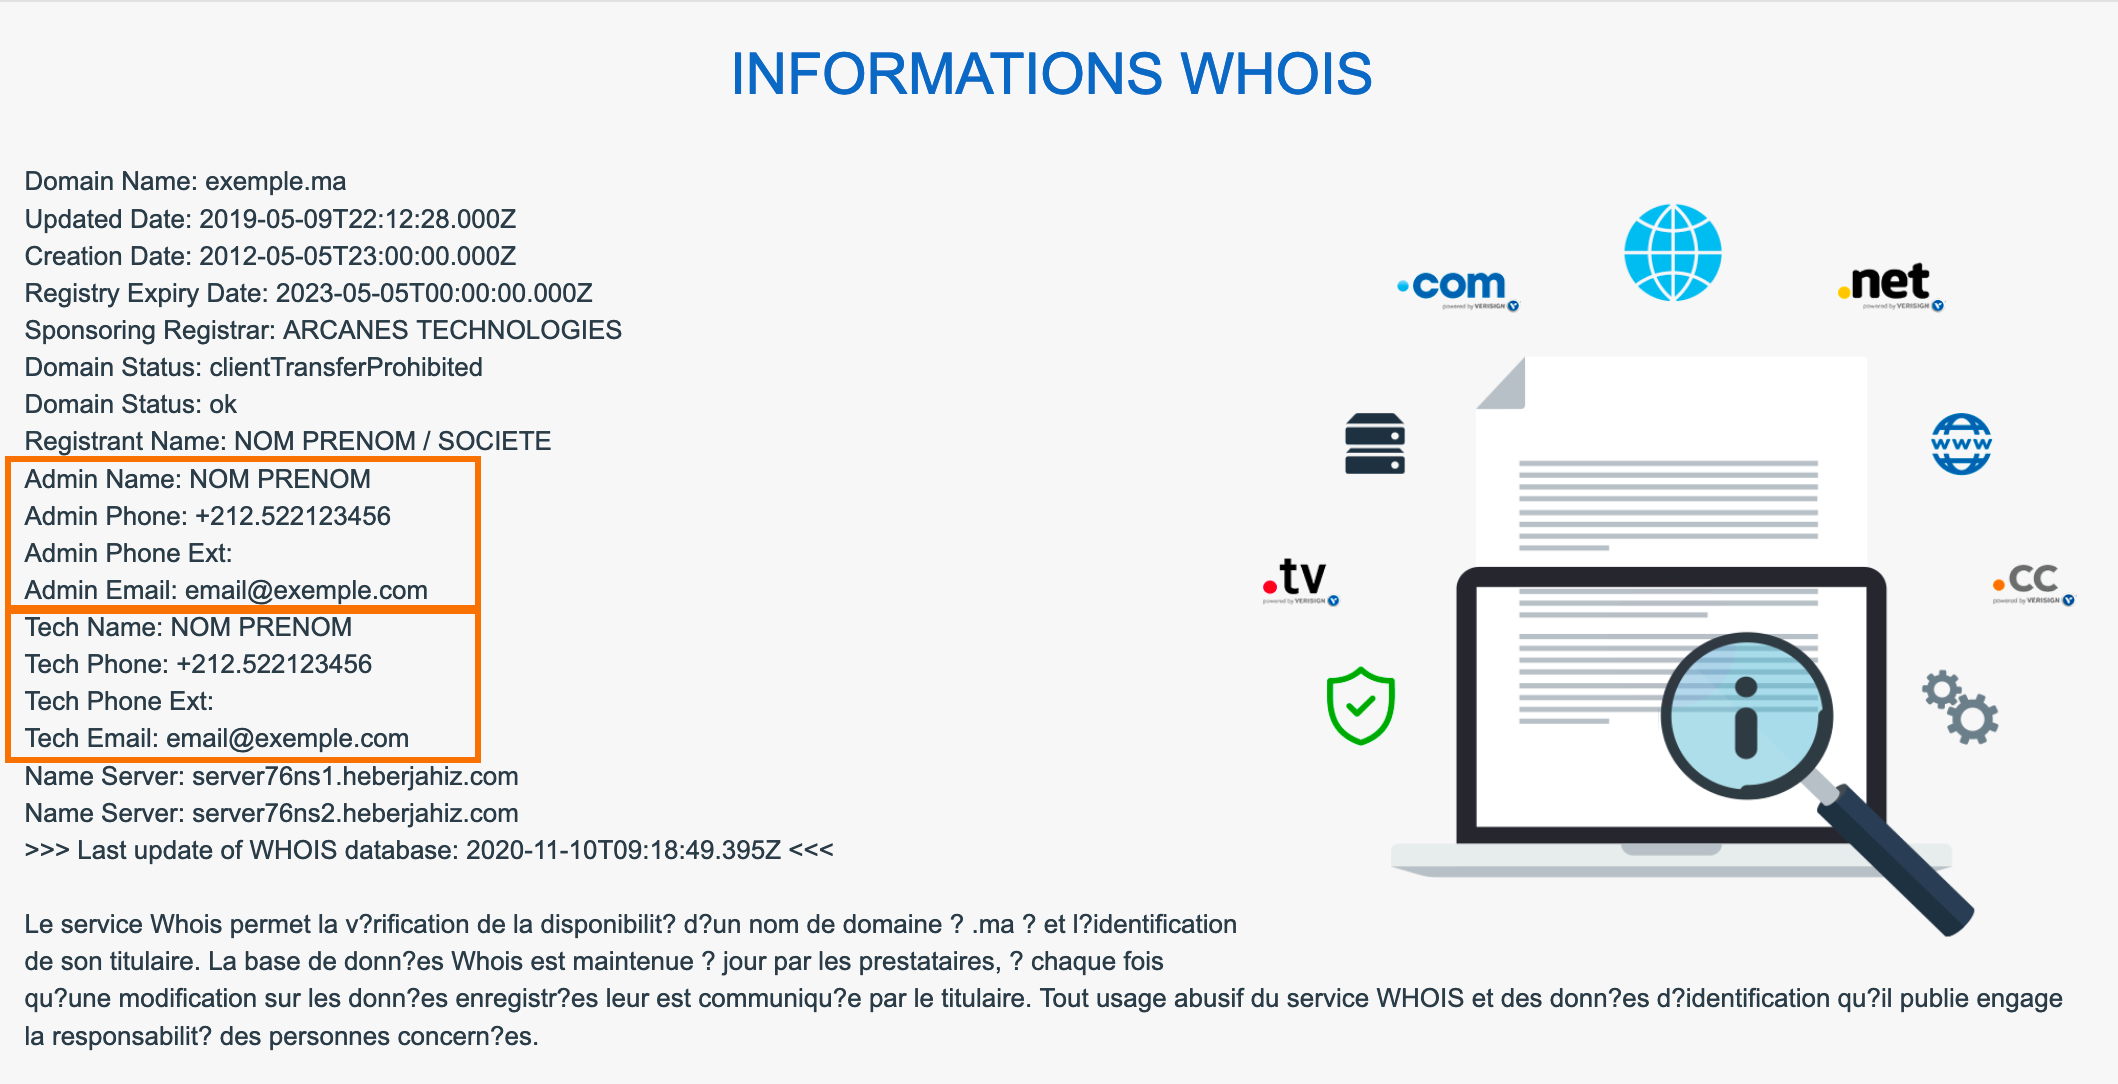 Informations WHOIS